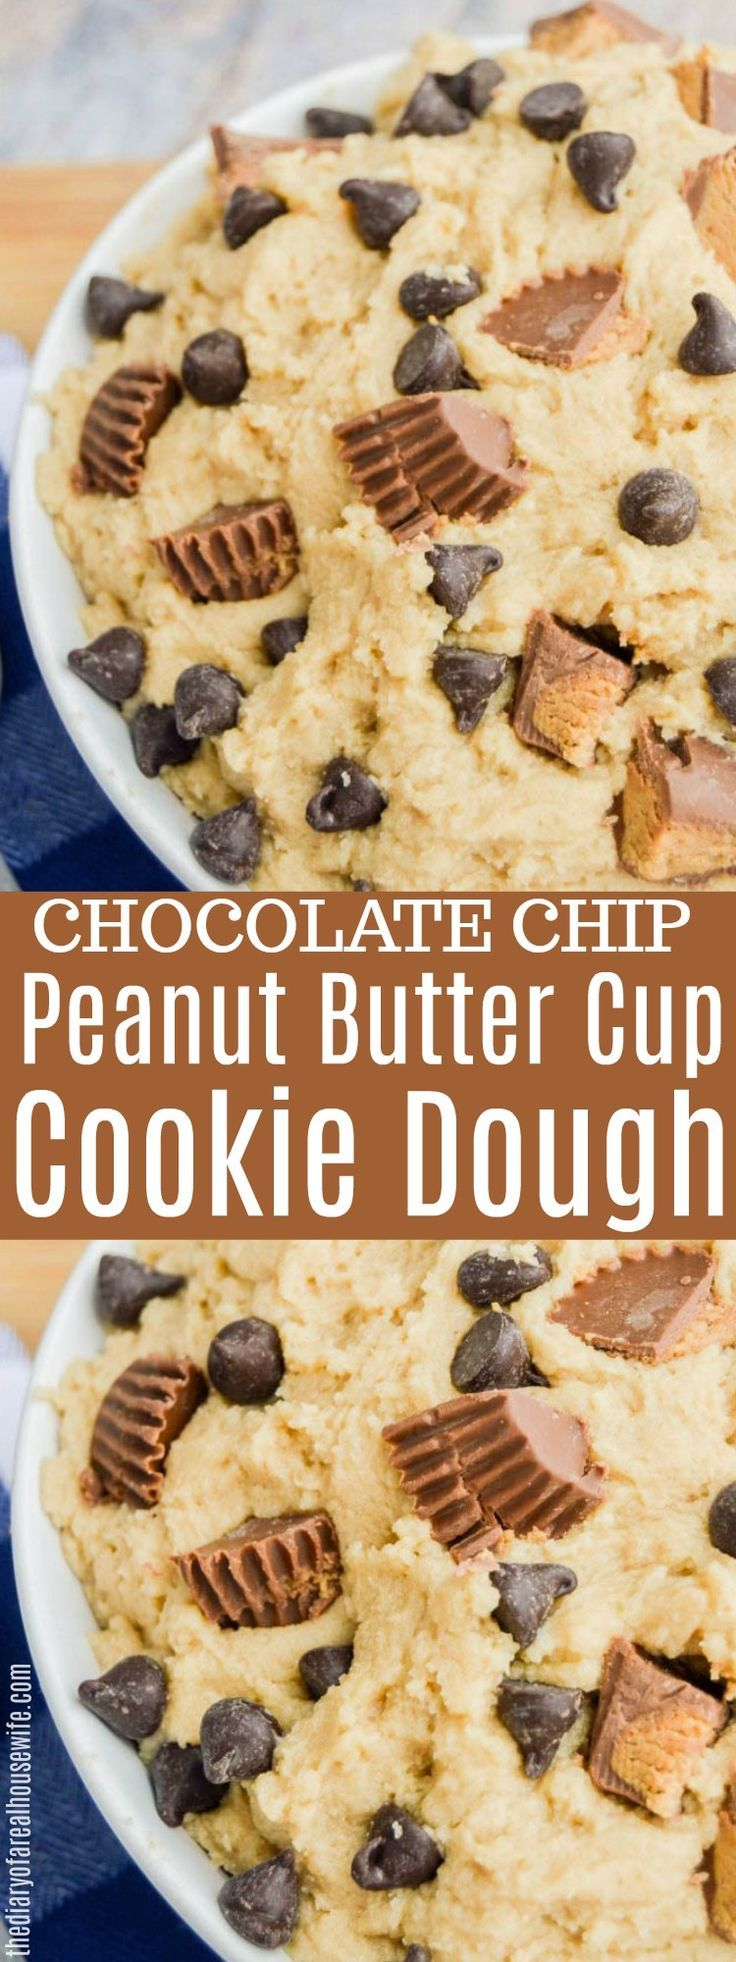 Chocolate Chip Peanut Butter Cup Cookie Dough #cookie #dessert #chocolate #peanutbutter #healthycookiedough